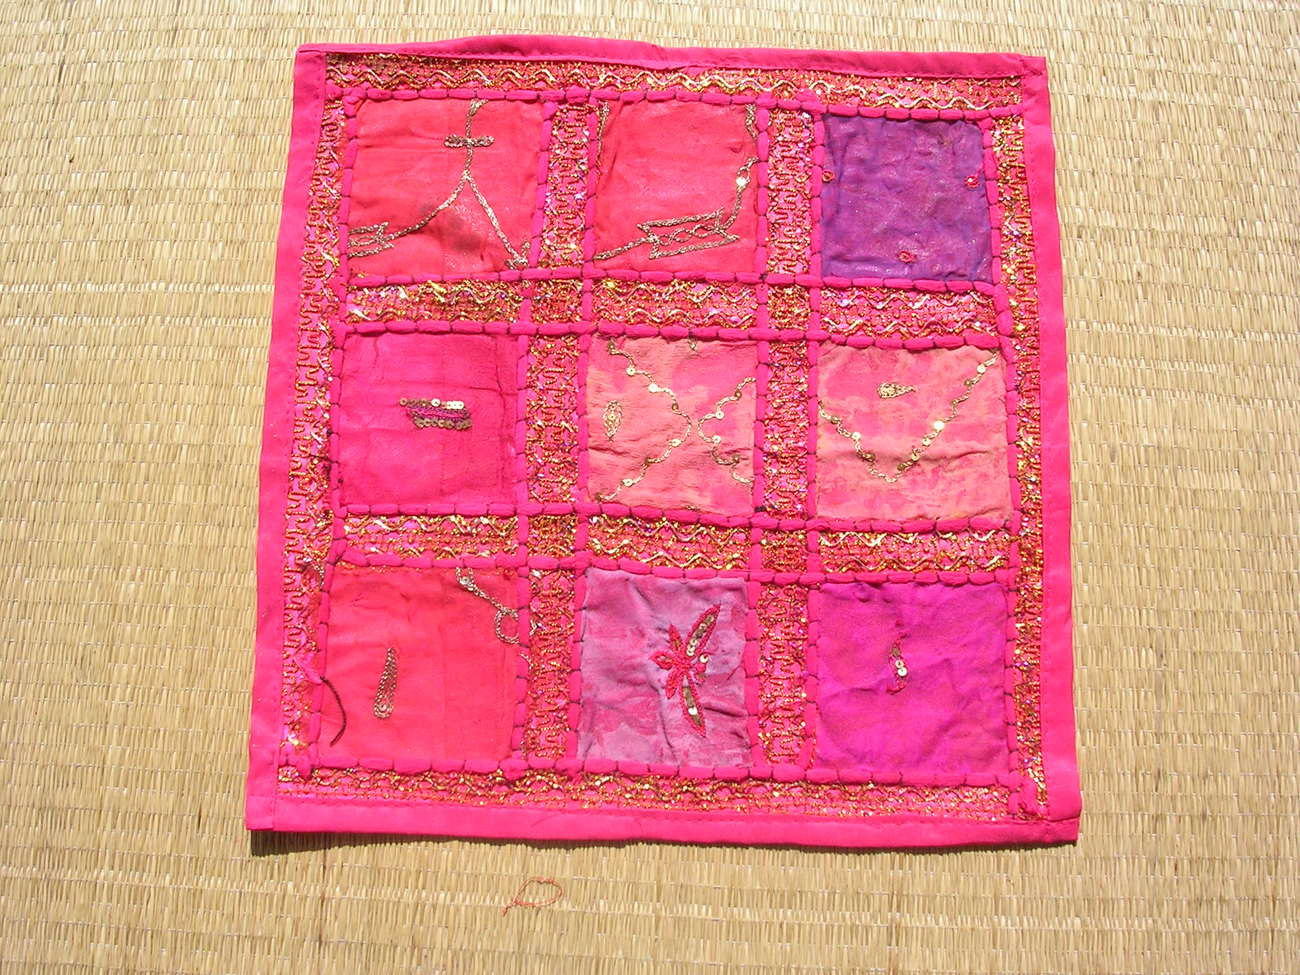 3 Ethnic Indian Pink Patchwork embroider Cushion pillow cov